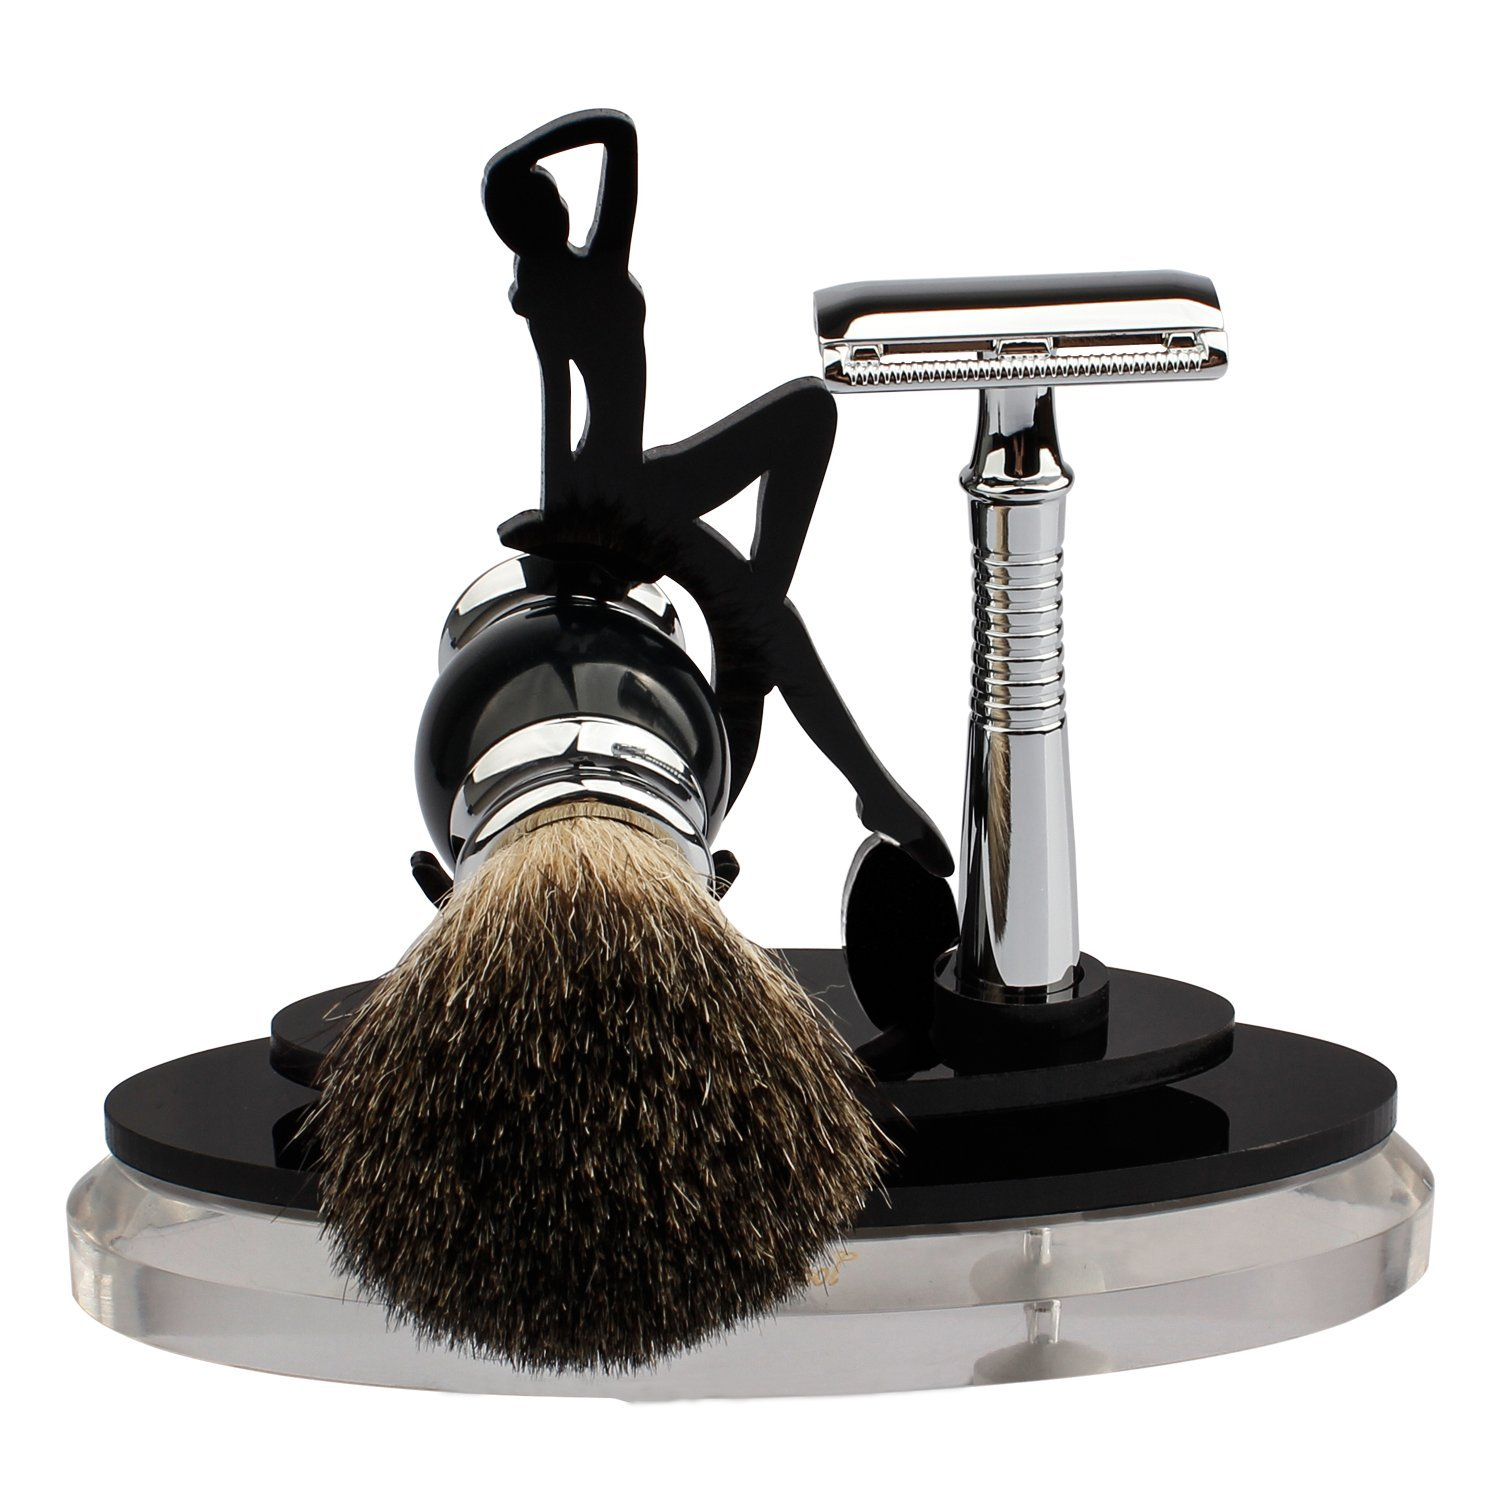 Shaving Set, Long Handle Safety Razor+Badger Hair Shaving Brush+Shave Stands by Deluxe Crystal Acrylic+5 Platinum Double Edge Blades, Shaving Gift Kit for Father Husband & Friends